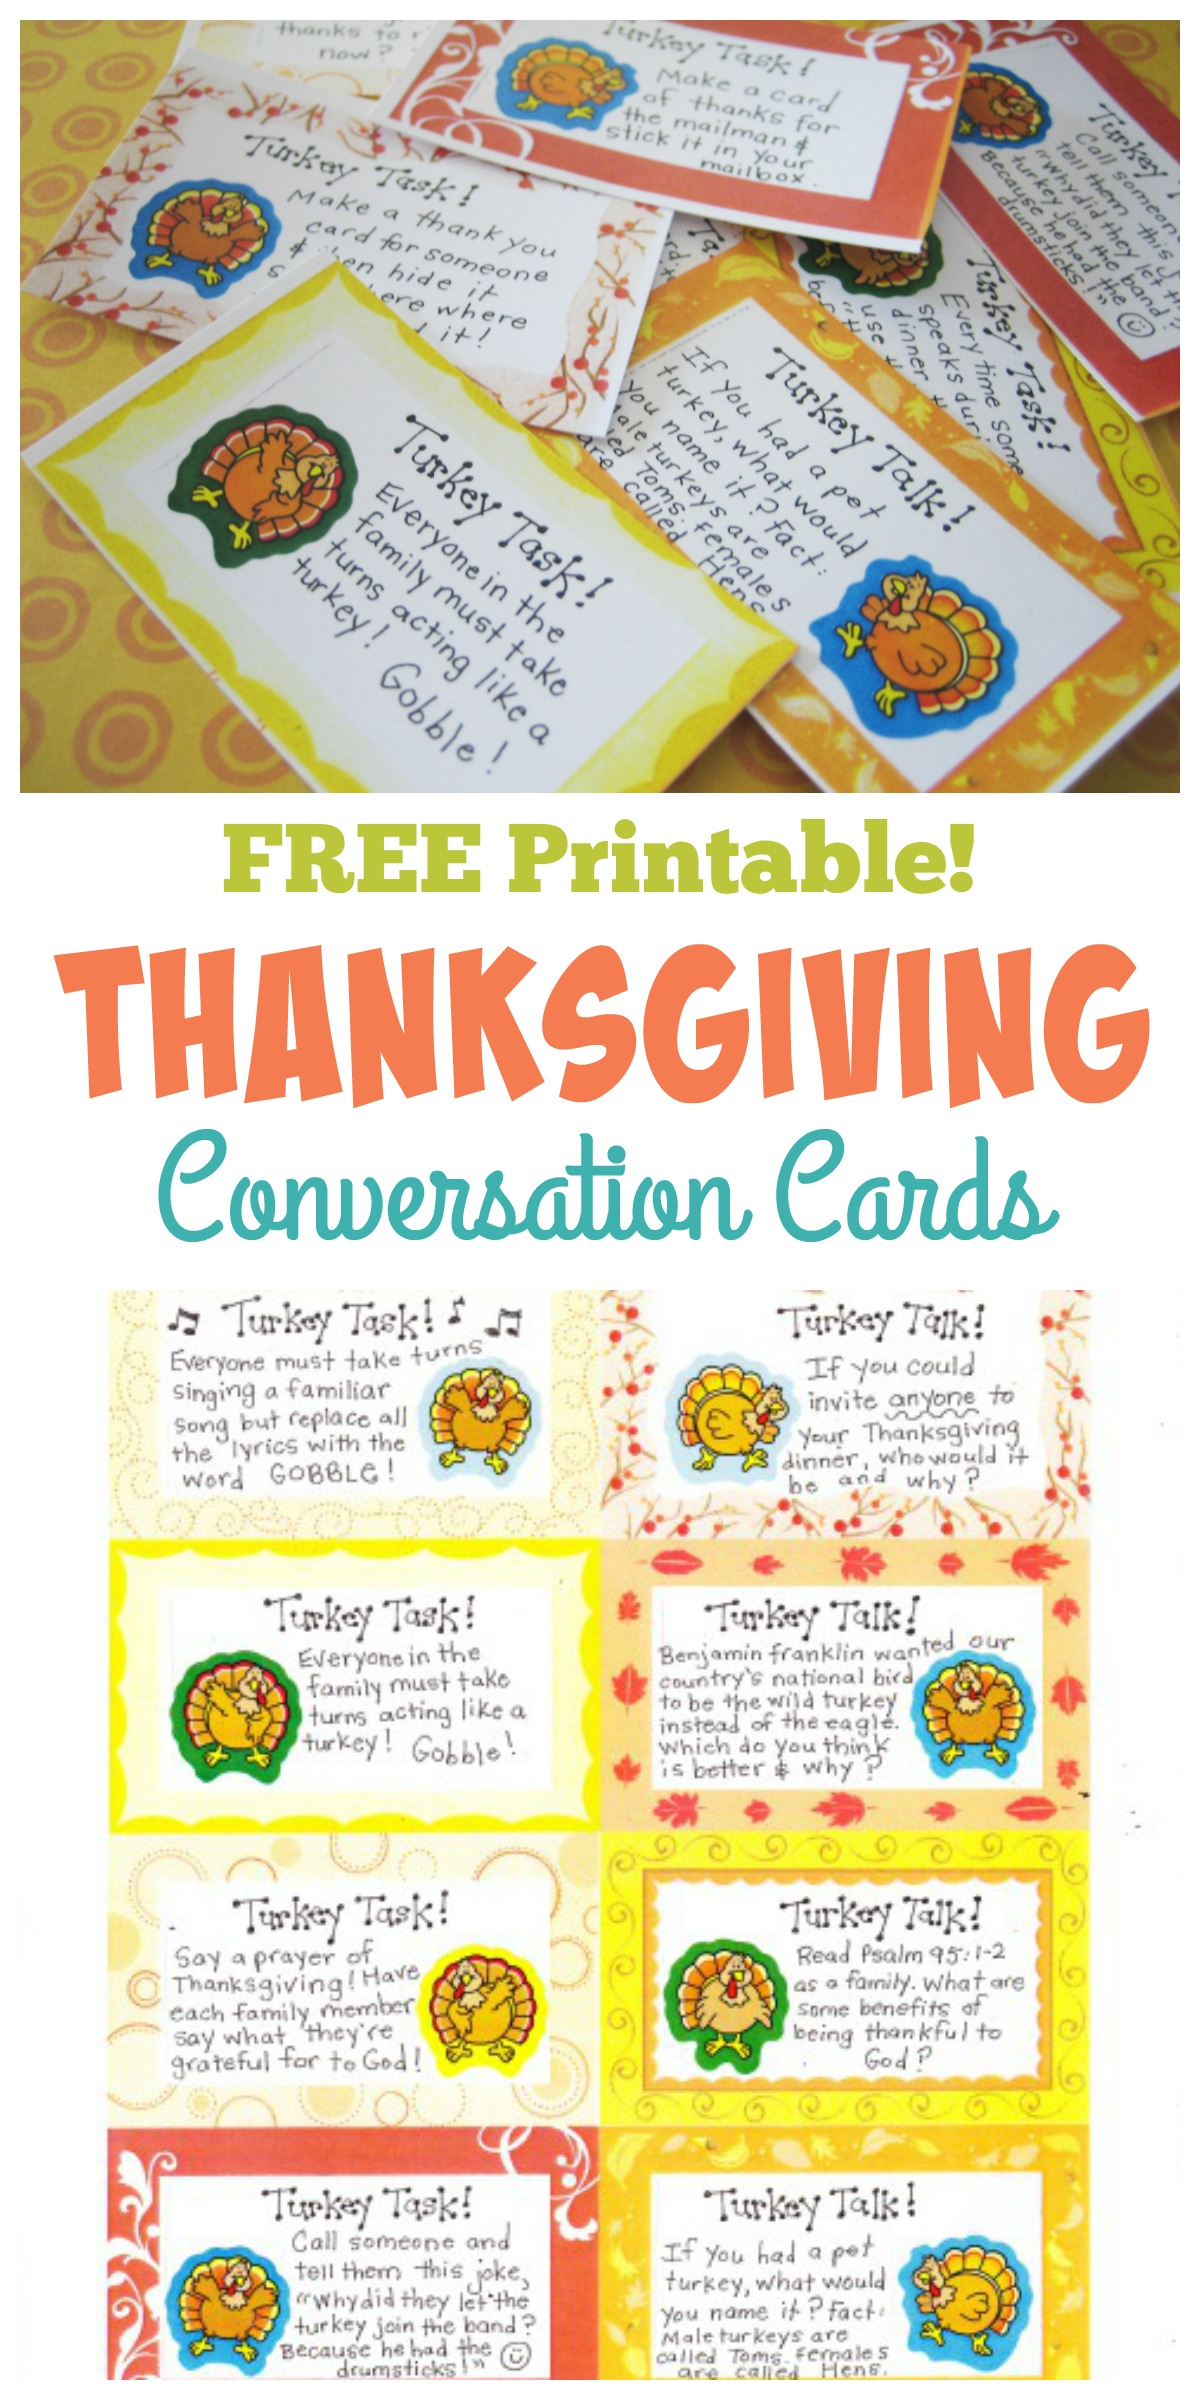 photograph regarding Printable Conversation Cards known as Thanksgiving Interaction Playing cards - Free of charge Printables! - Satisfied